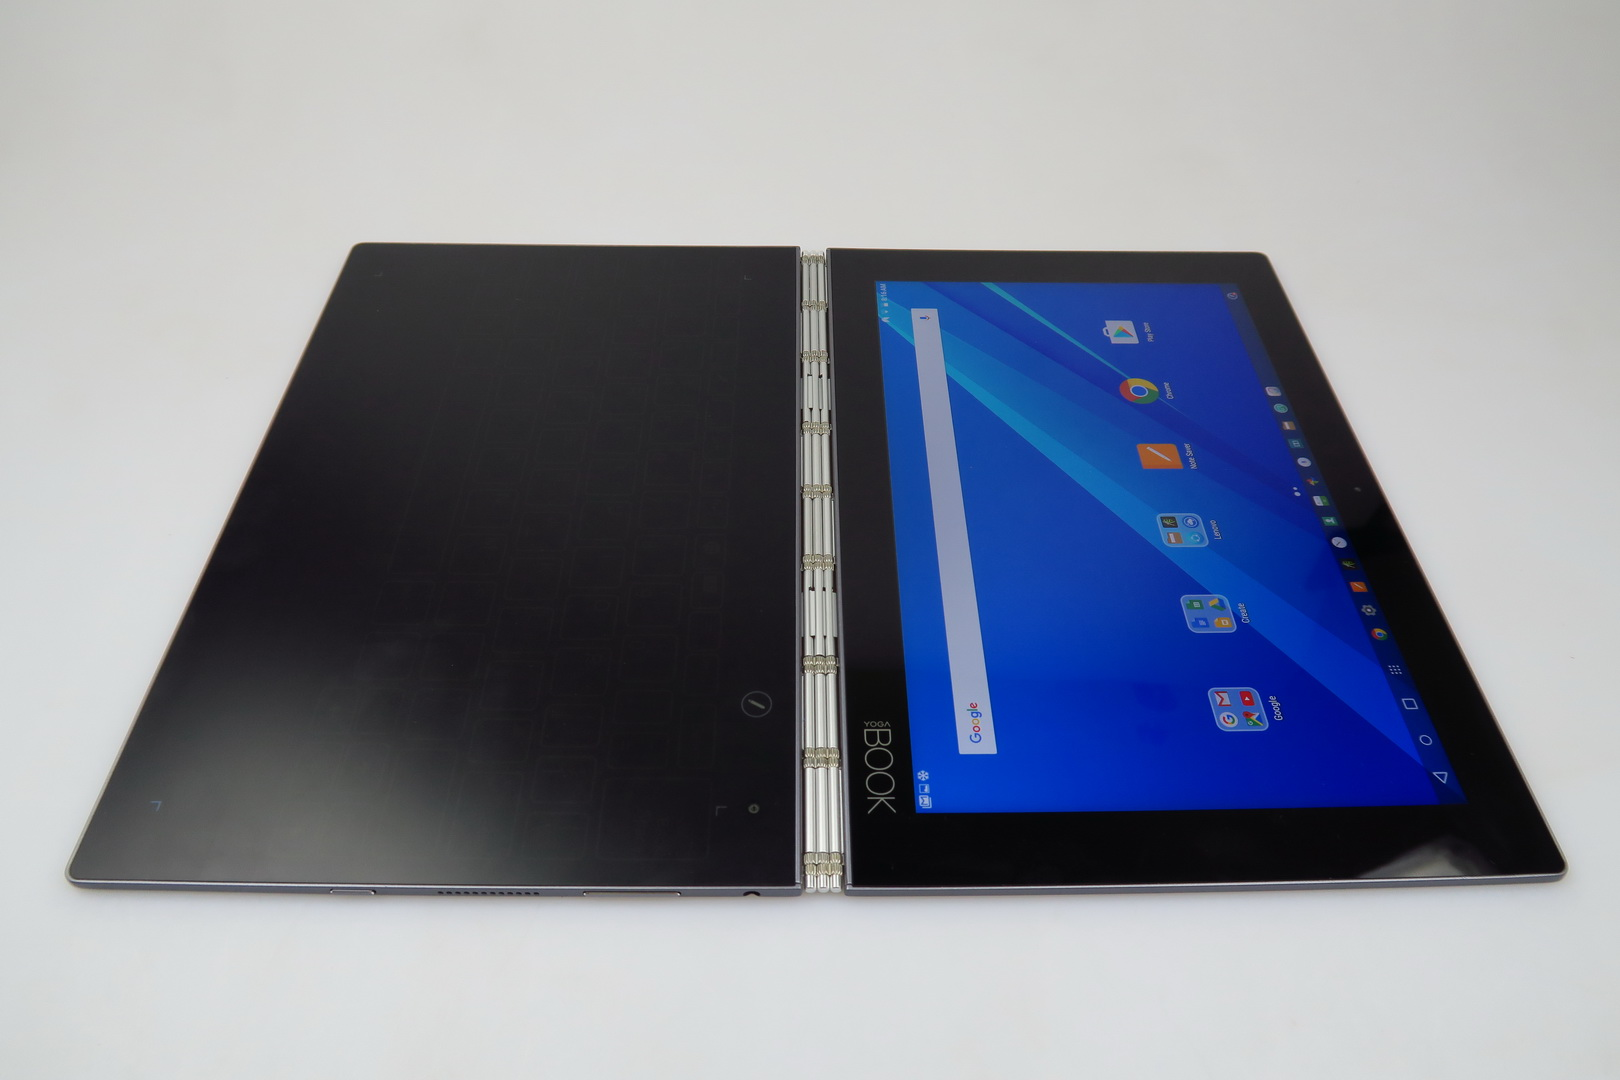 lenovo yoga book review flipping the script on productivity touch input and pens video. Black Bedroom Furniture Sets. Home Design Ideas